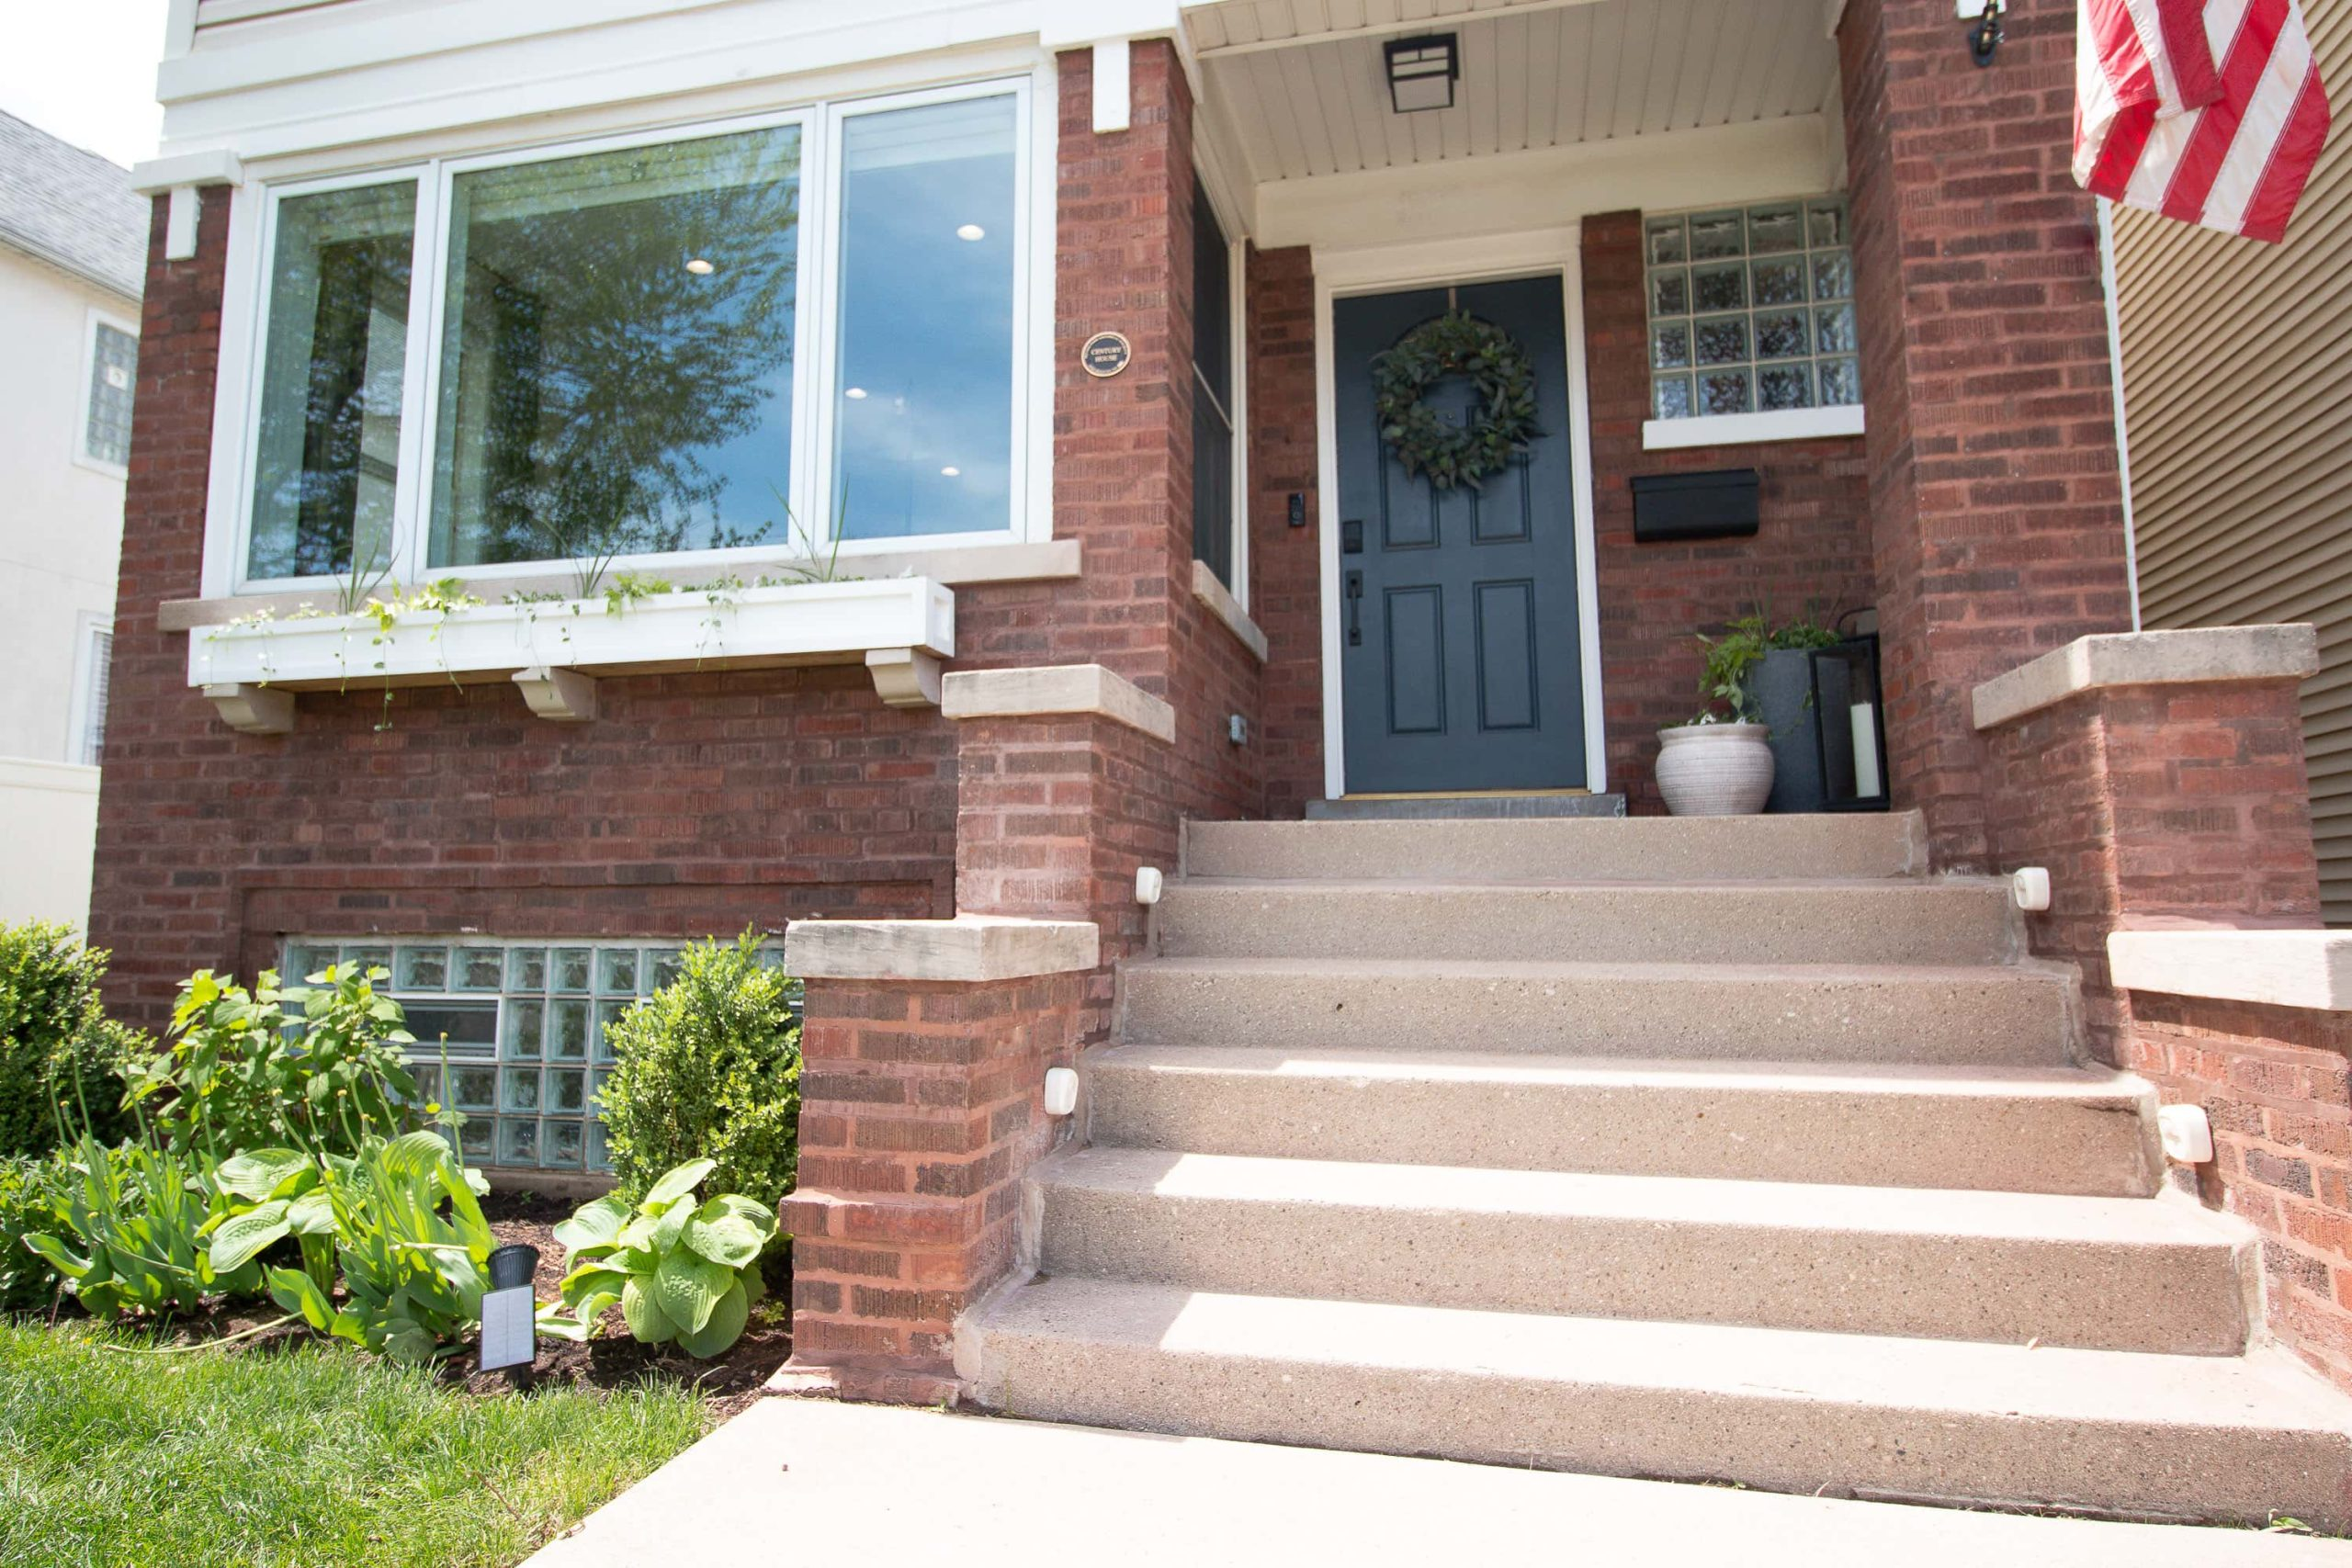 Repairing the crumbling brick and mortar on our home's exterior